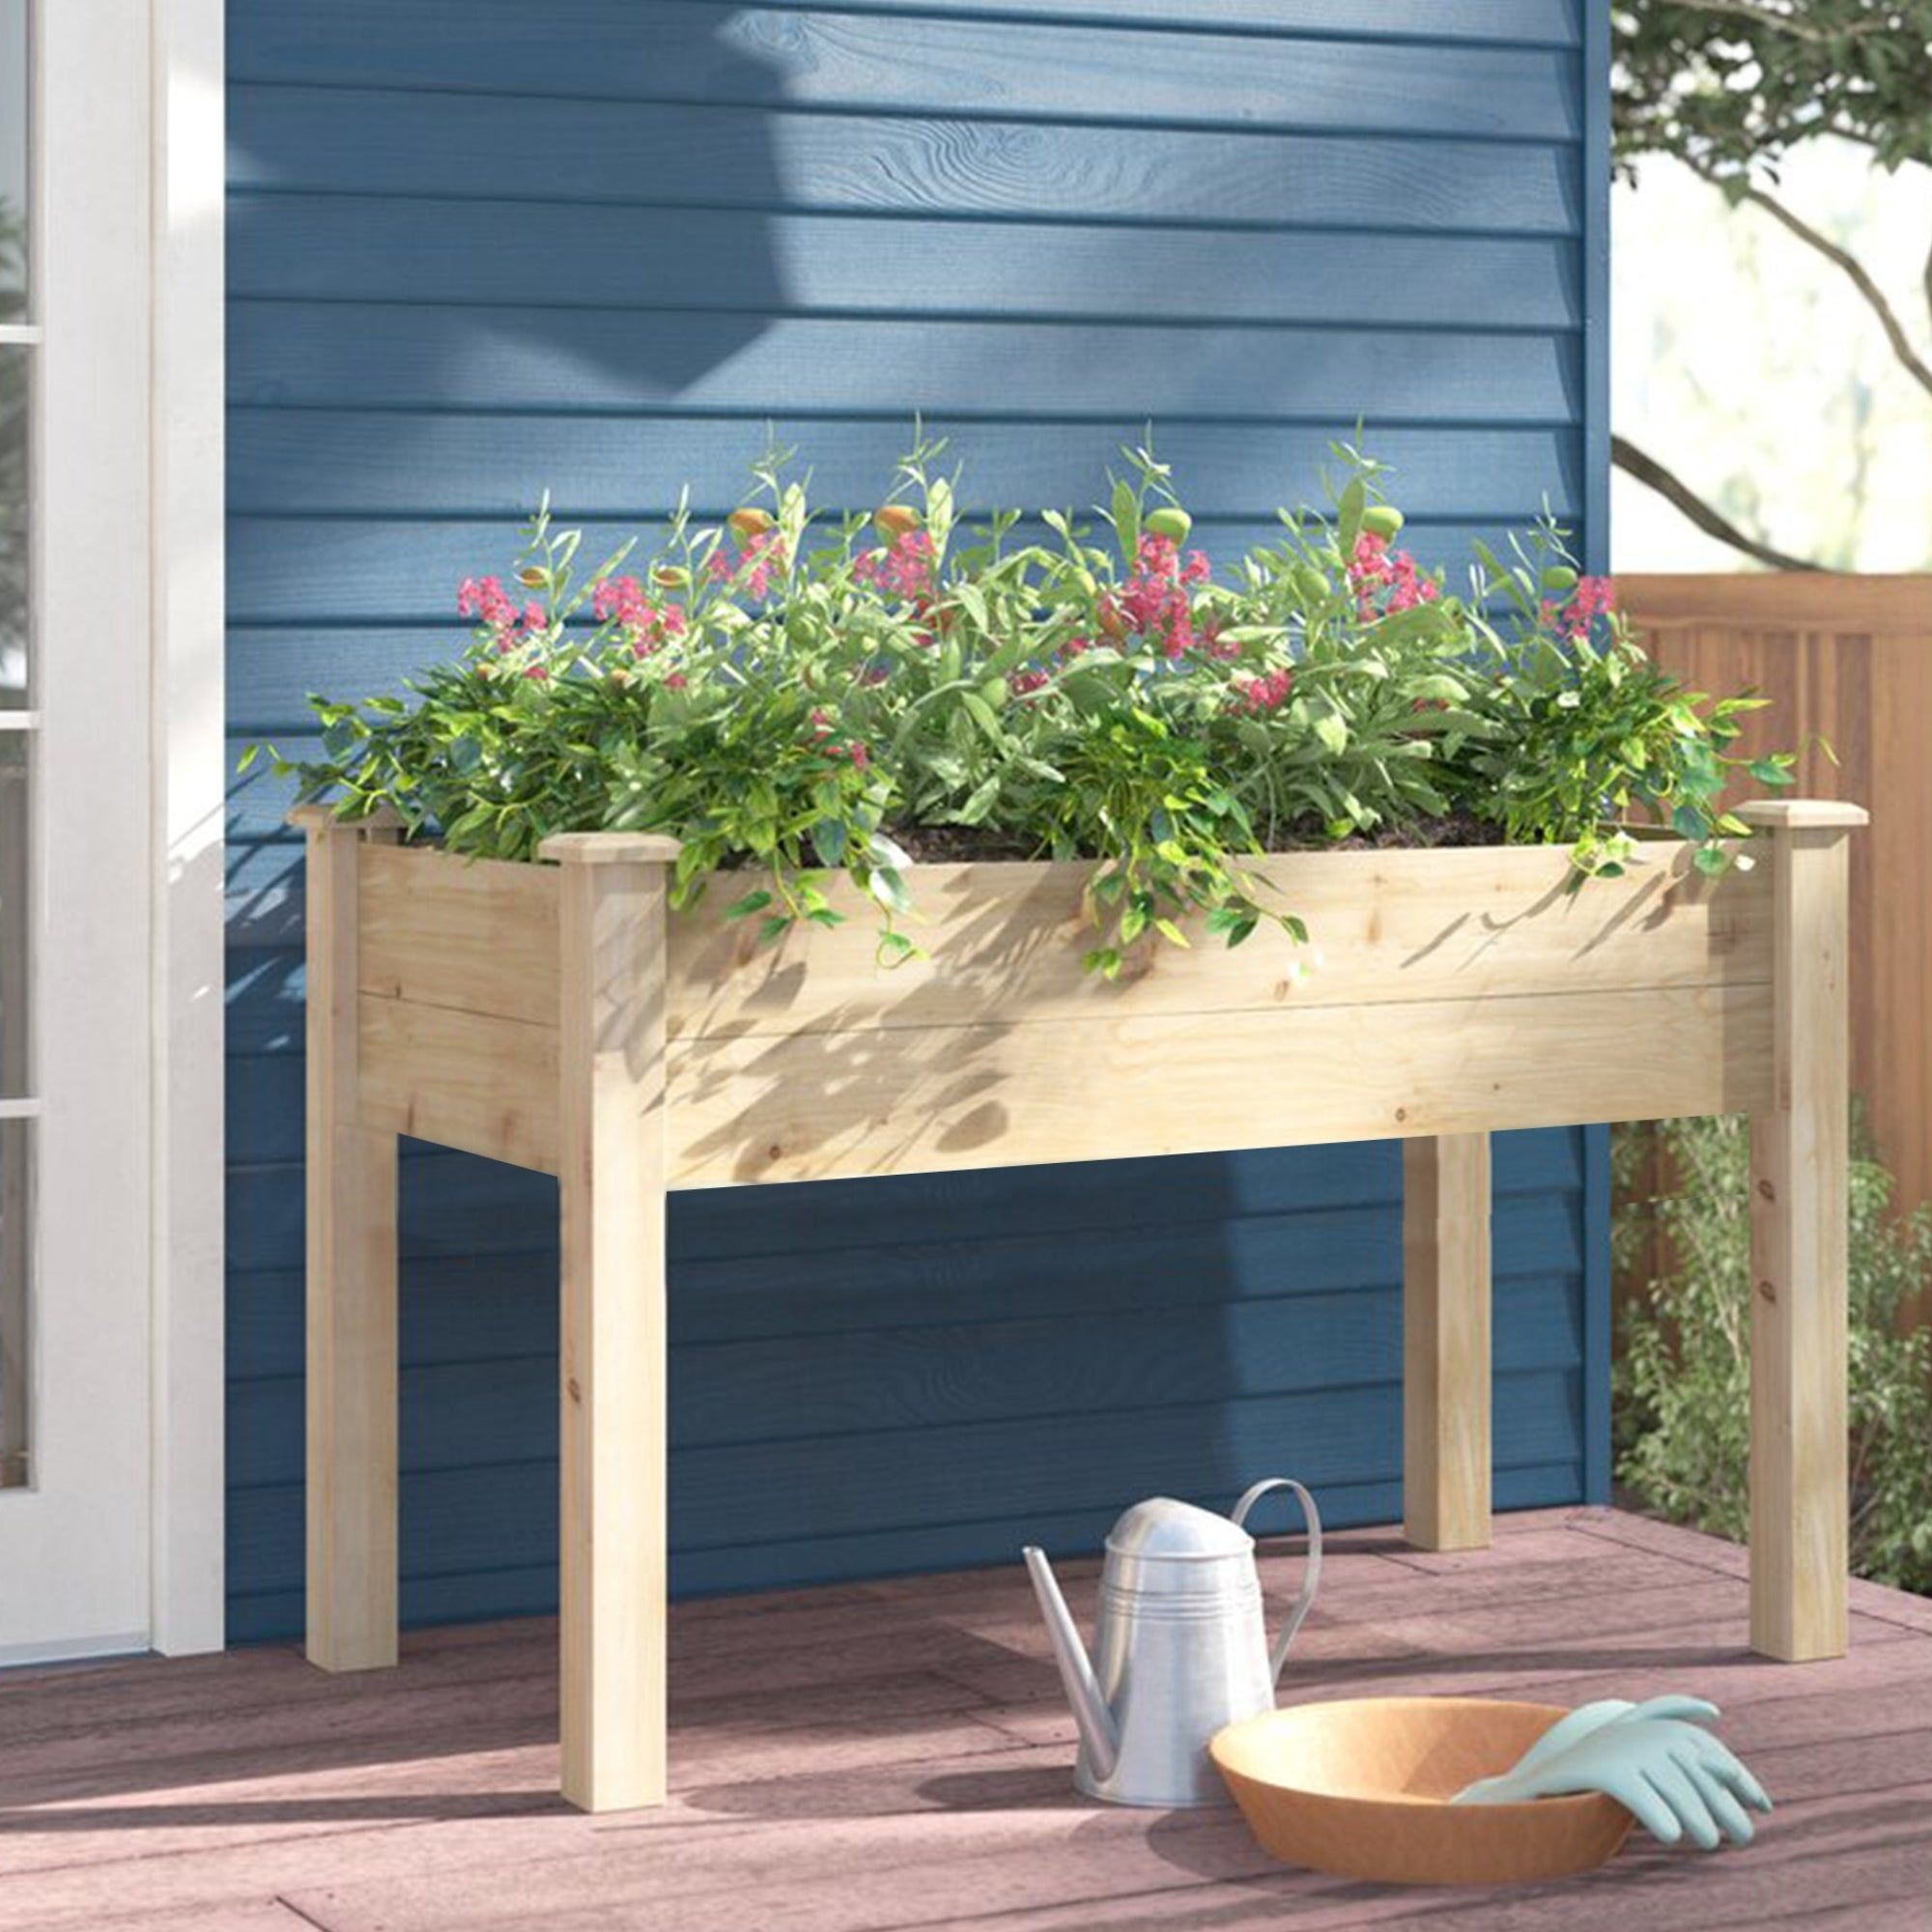 Raised Garden Bed Kit Elevated Planter Flower Box With Legs Outdoor Indoor Easy Assembly Overstock 32854285